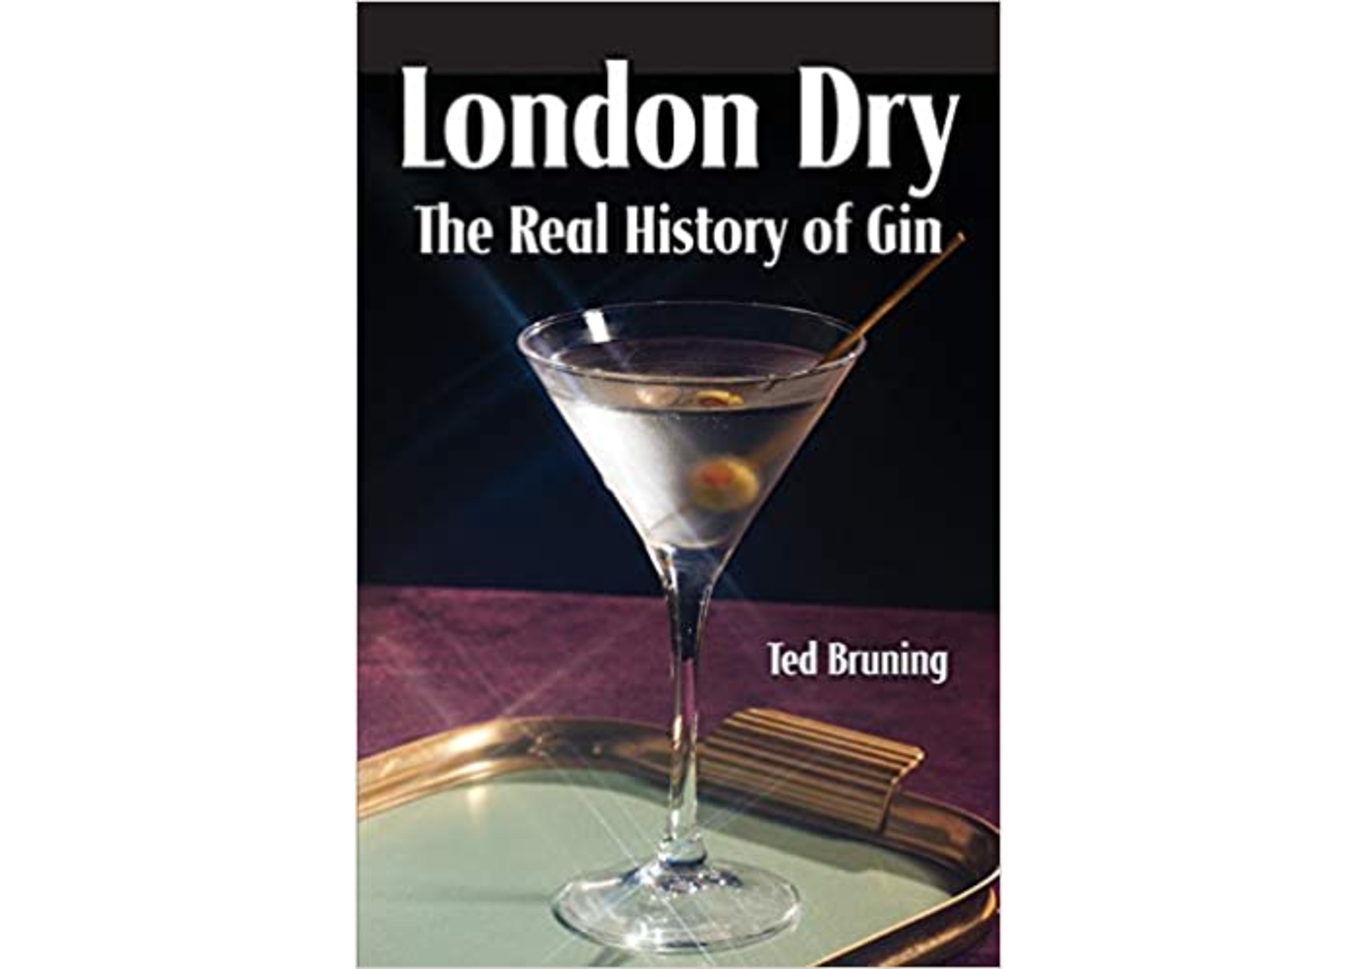 London Dry: The Real History of Gin image 1